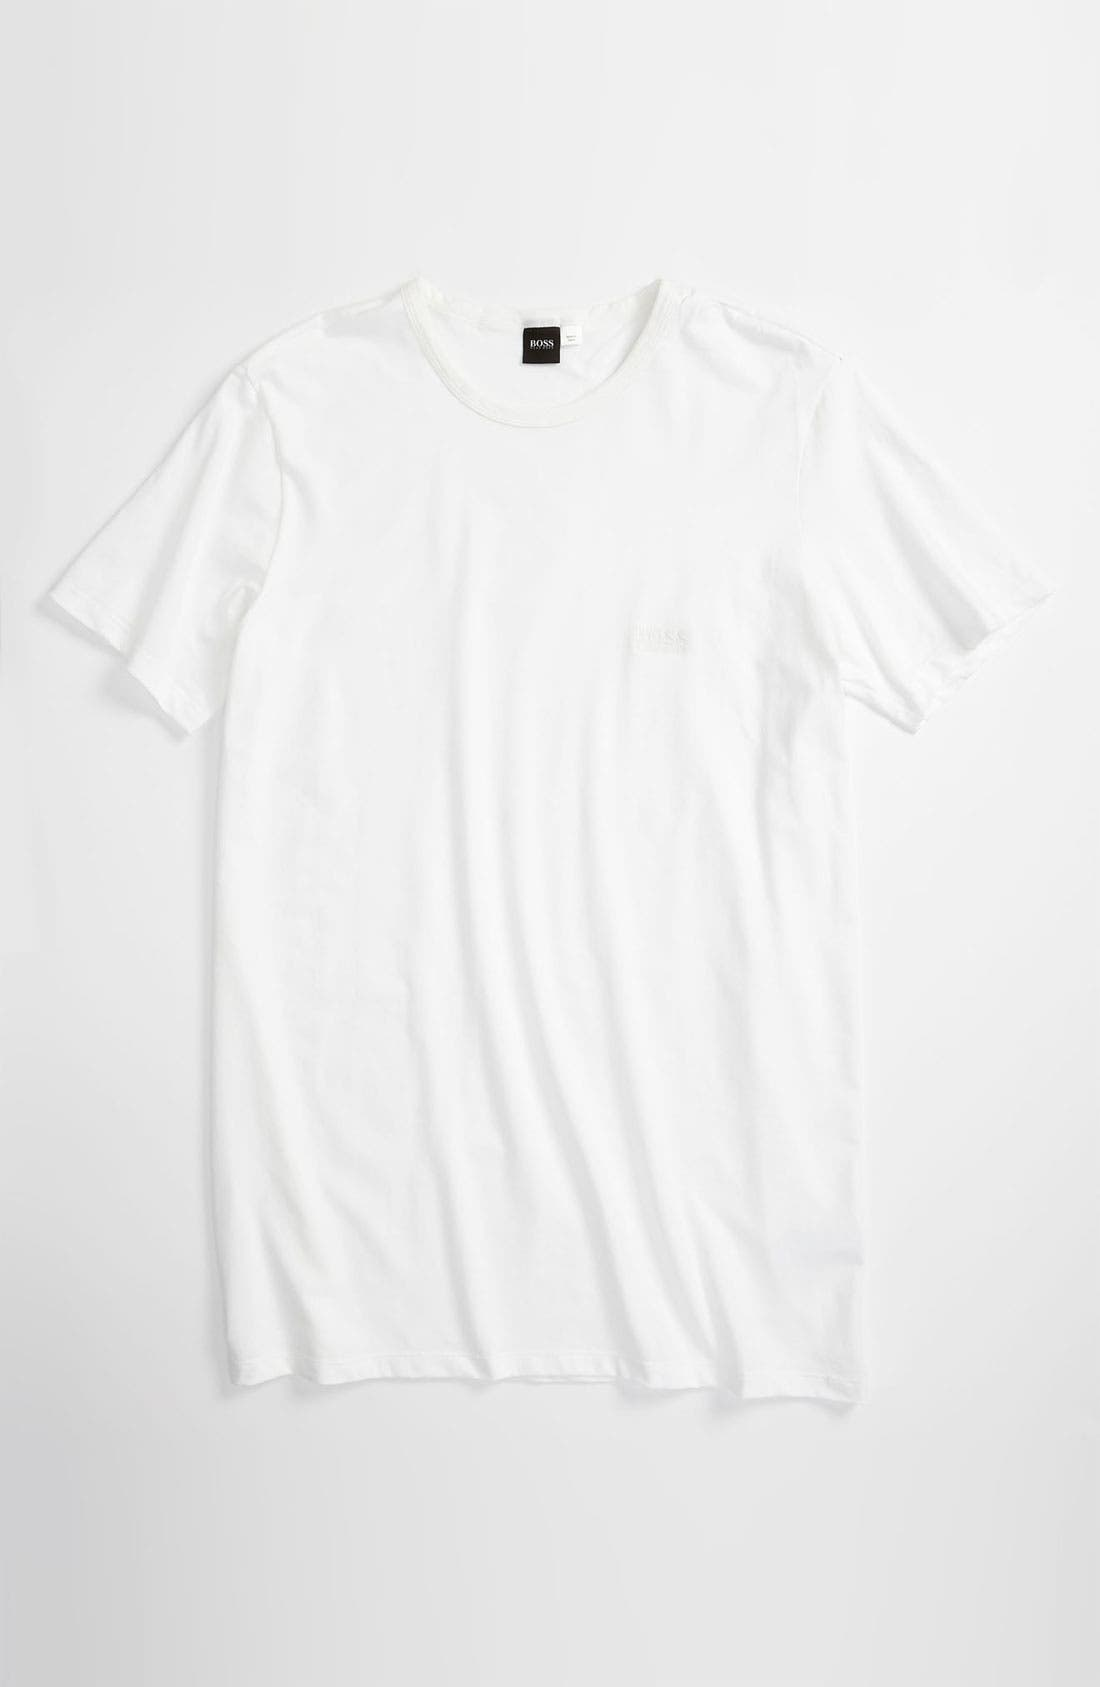 Alternate Image 1 Selected - BOSS HUGO BOSS Crewneck Stretch Cotton T-Shirt (Big) (Online Only)